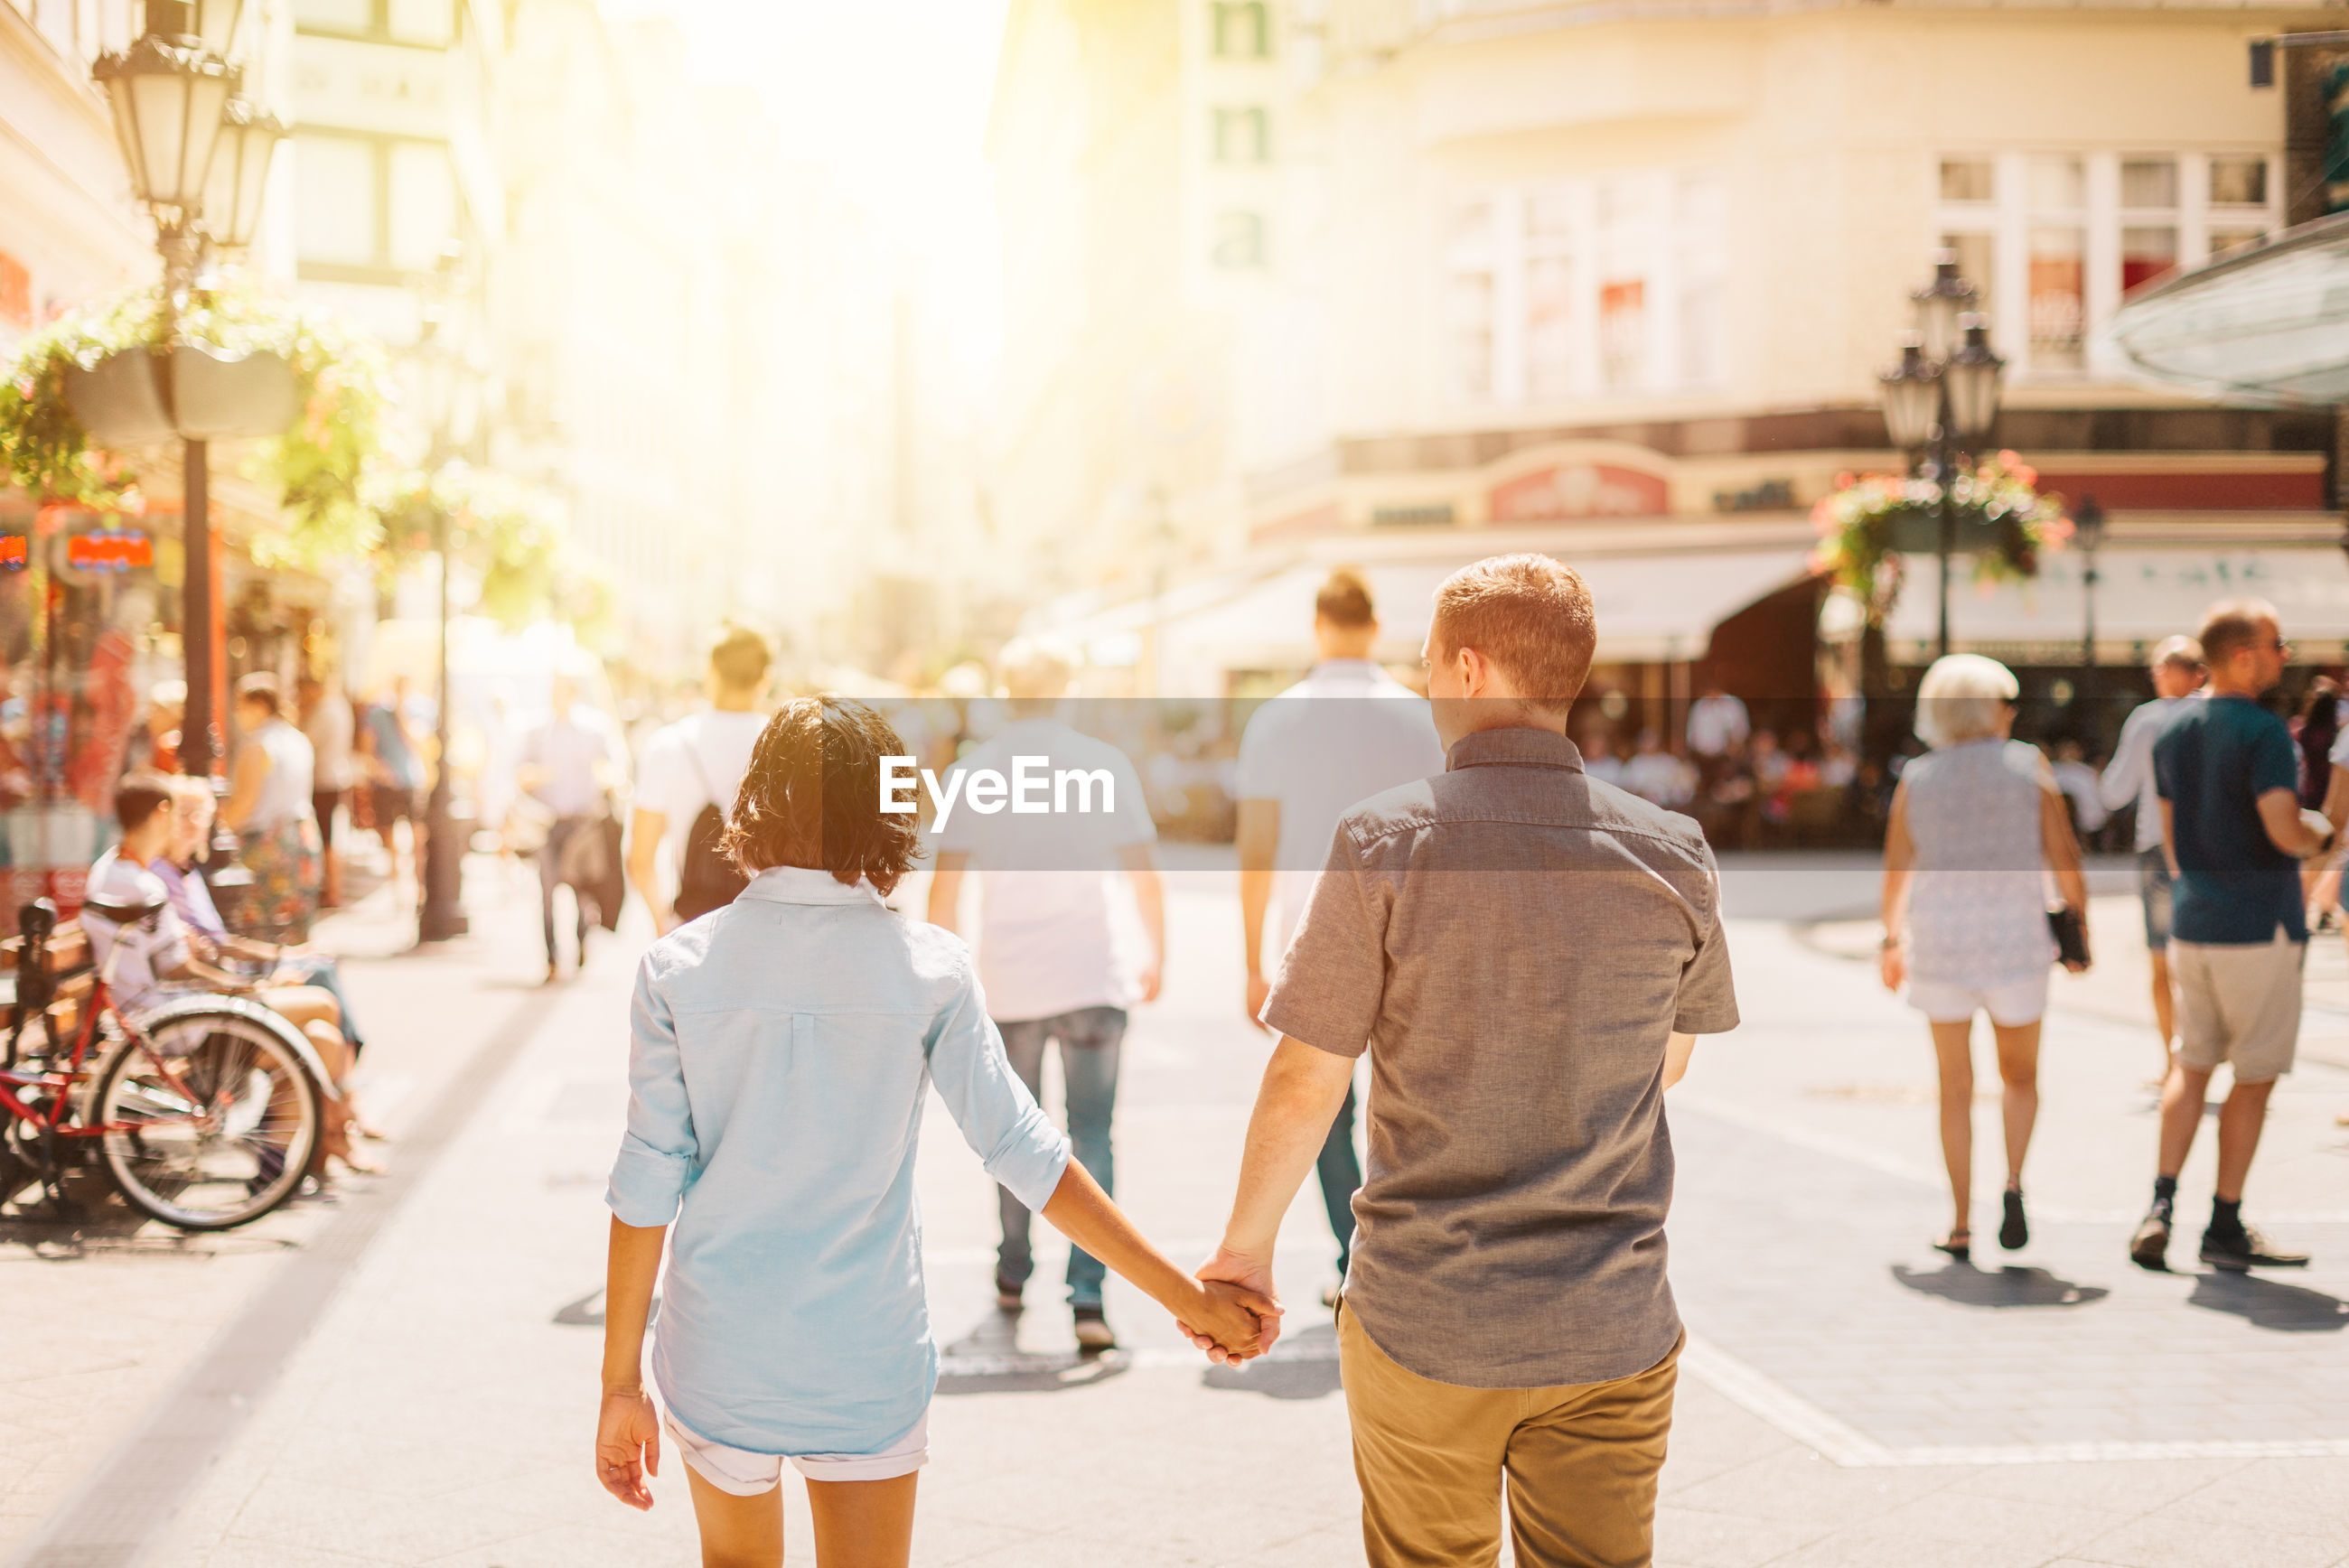 Rear view of couple holding hands while walking on street